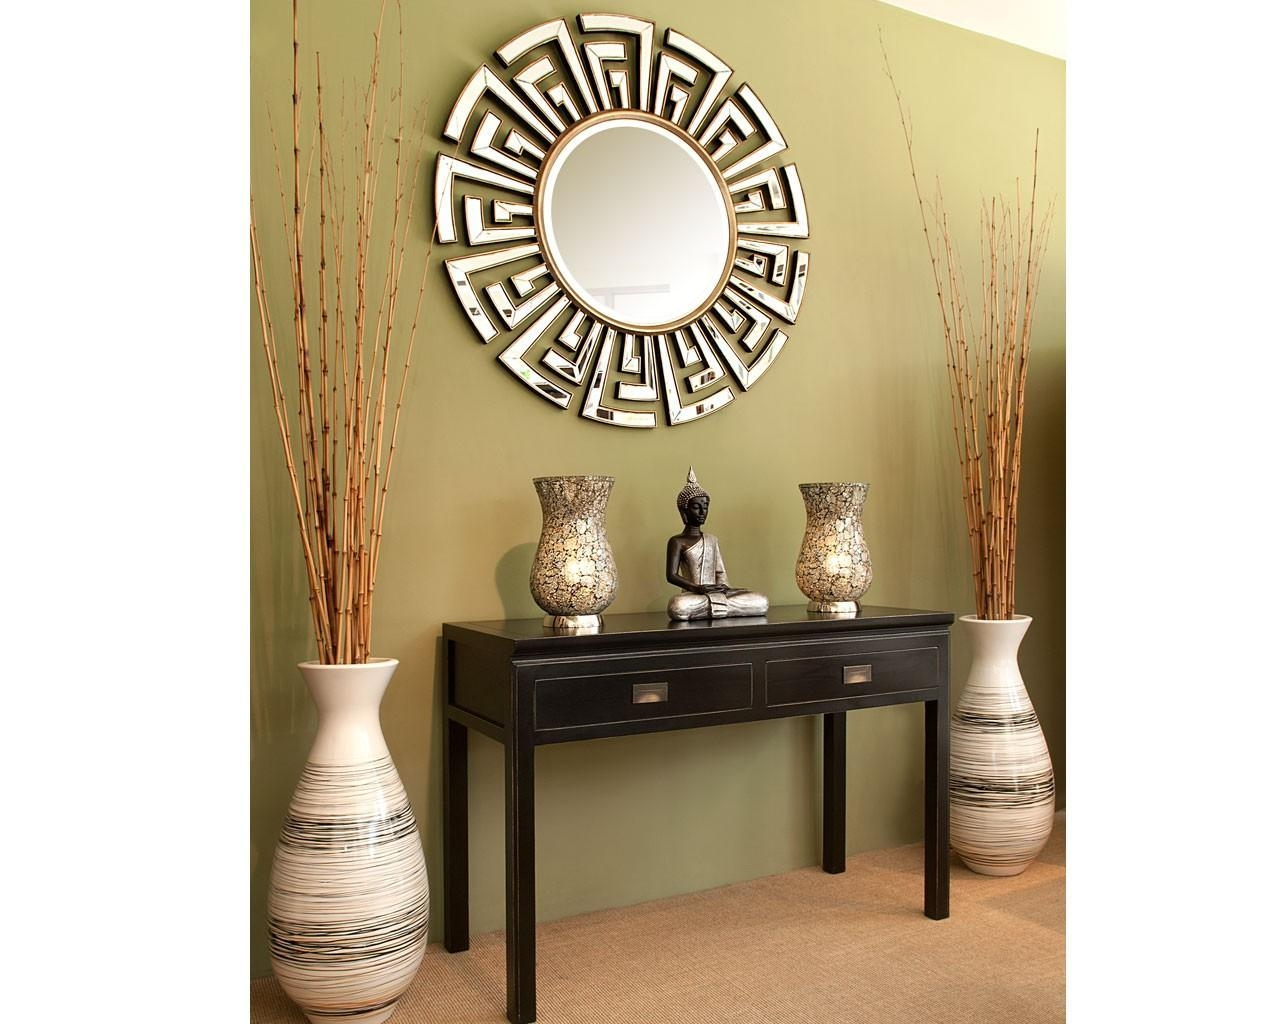 Contemporary Art Deco Round Mirror | Statement Circular Mirrors For Artdeco Mirrors (Image 12 of 20)